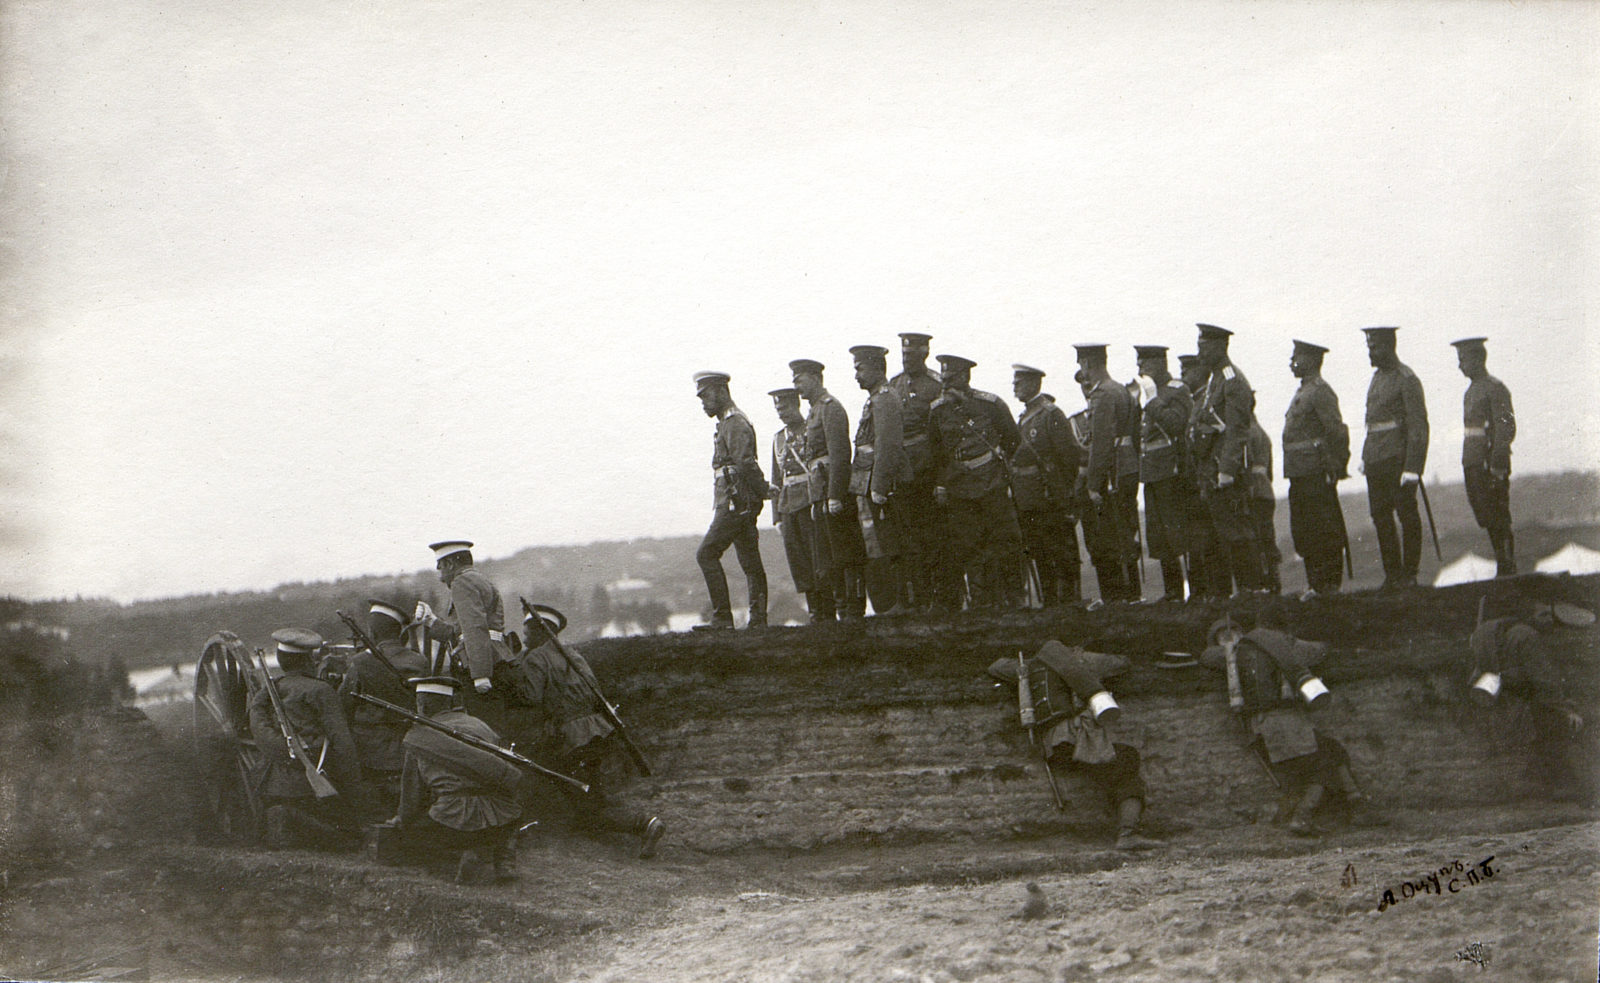 The inspection of troops by Nicholas II